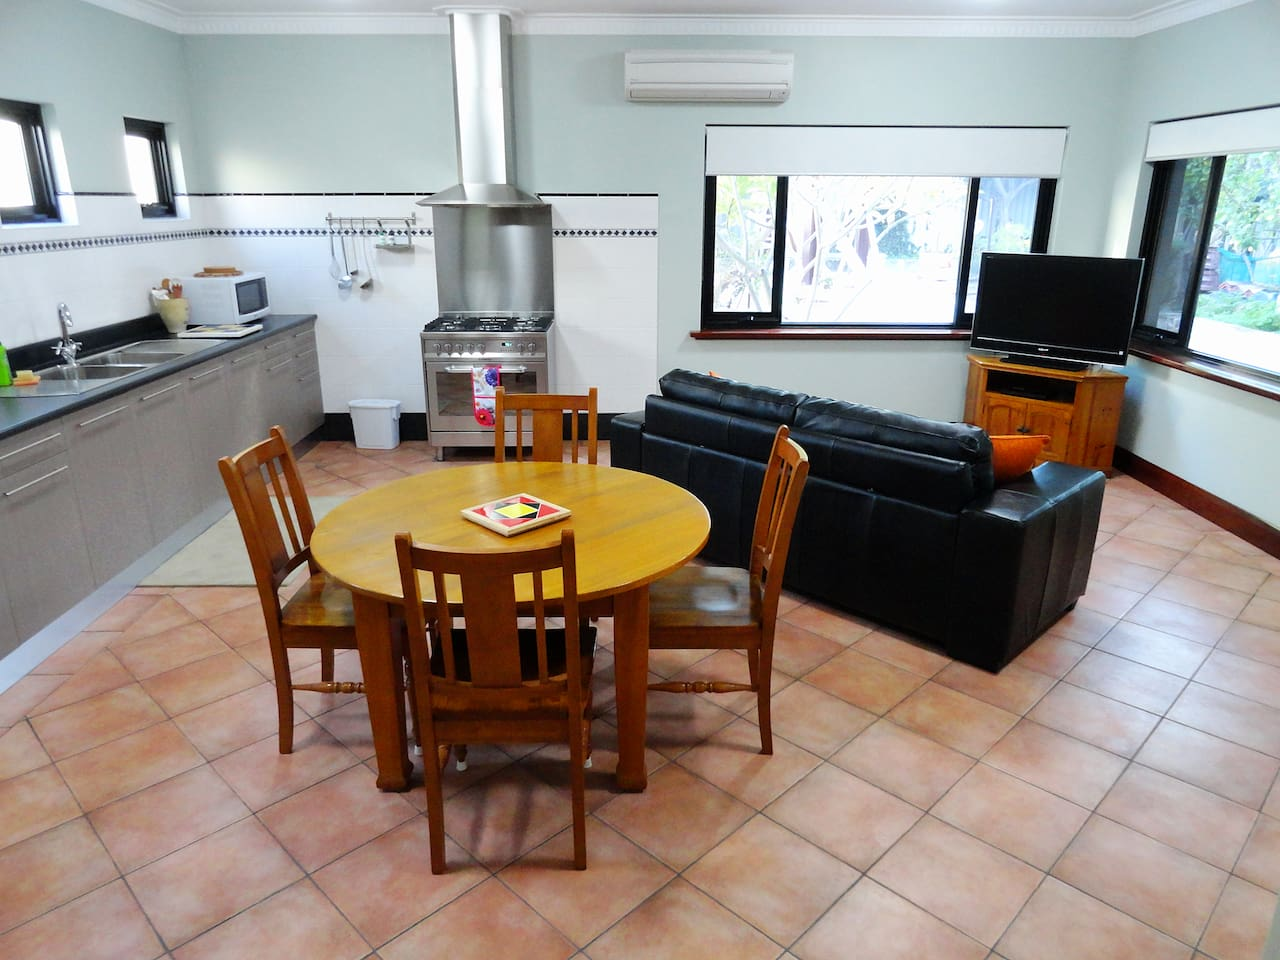 Spacious kitchen and dining / living area.